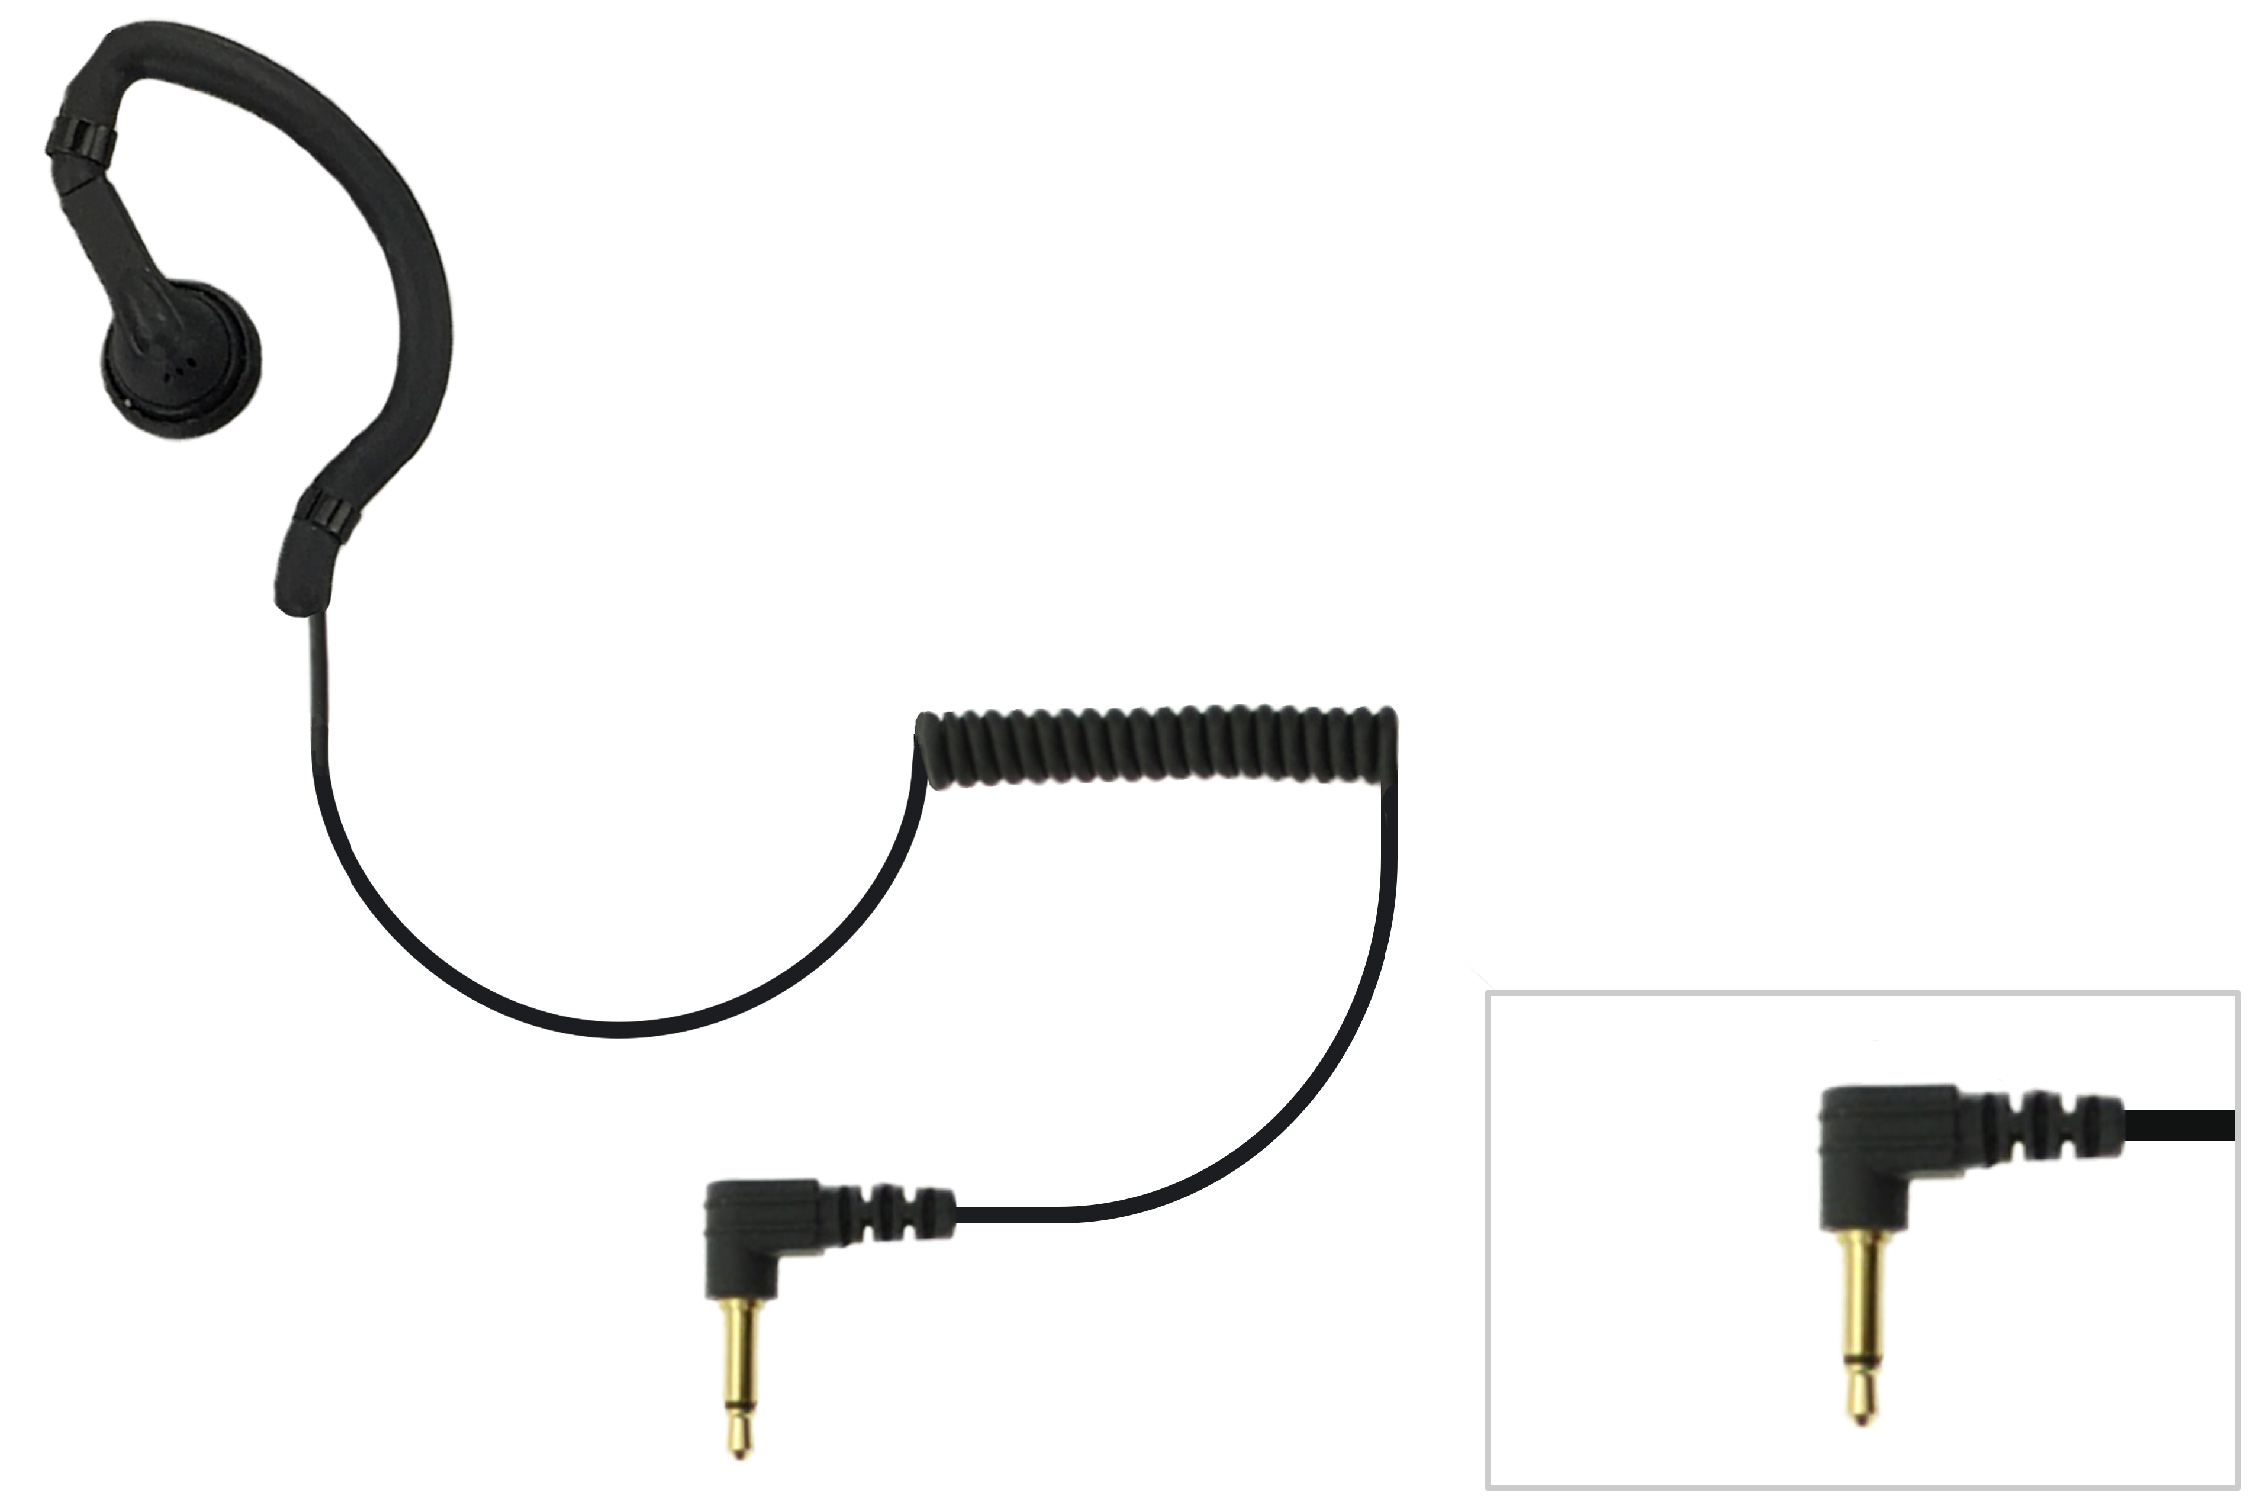 Earbud earpiece for remote speaker mic with 3.5mm plug